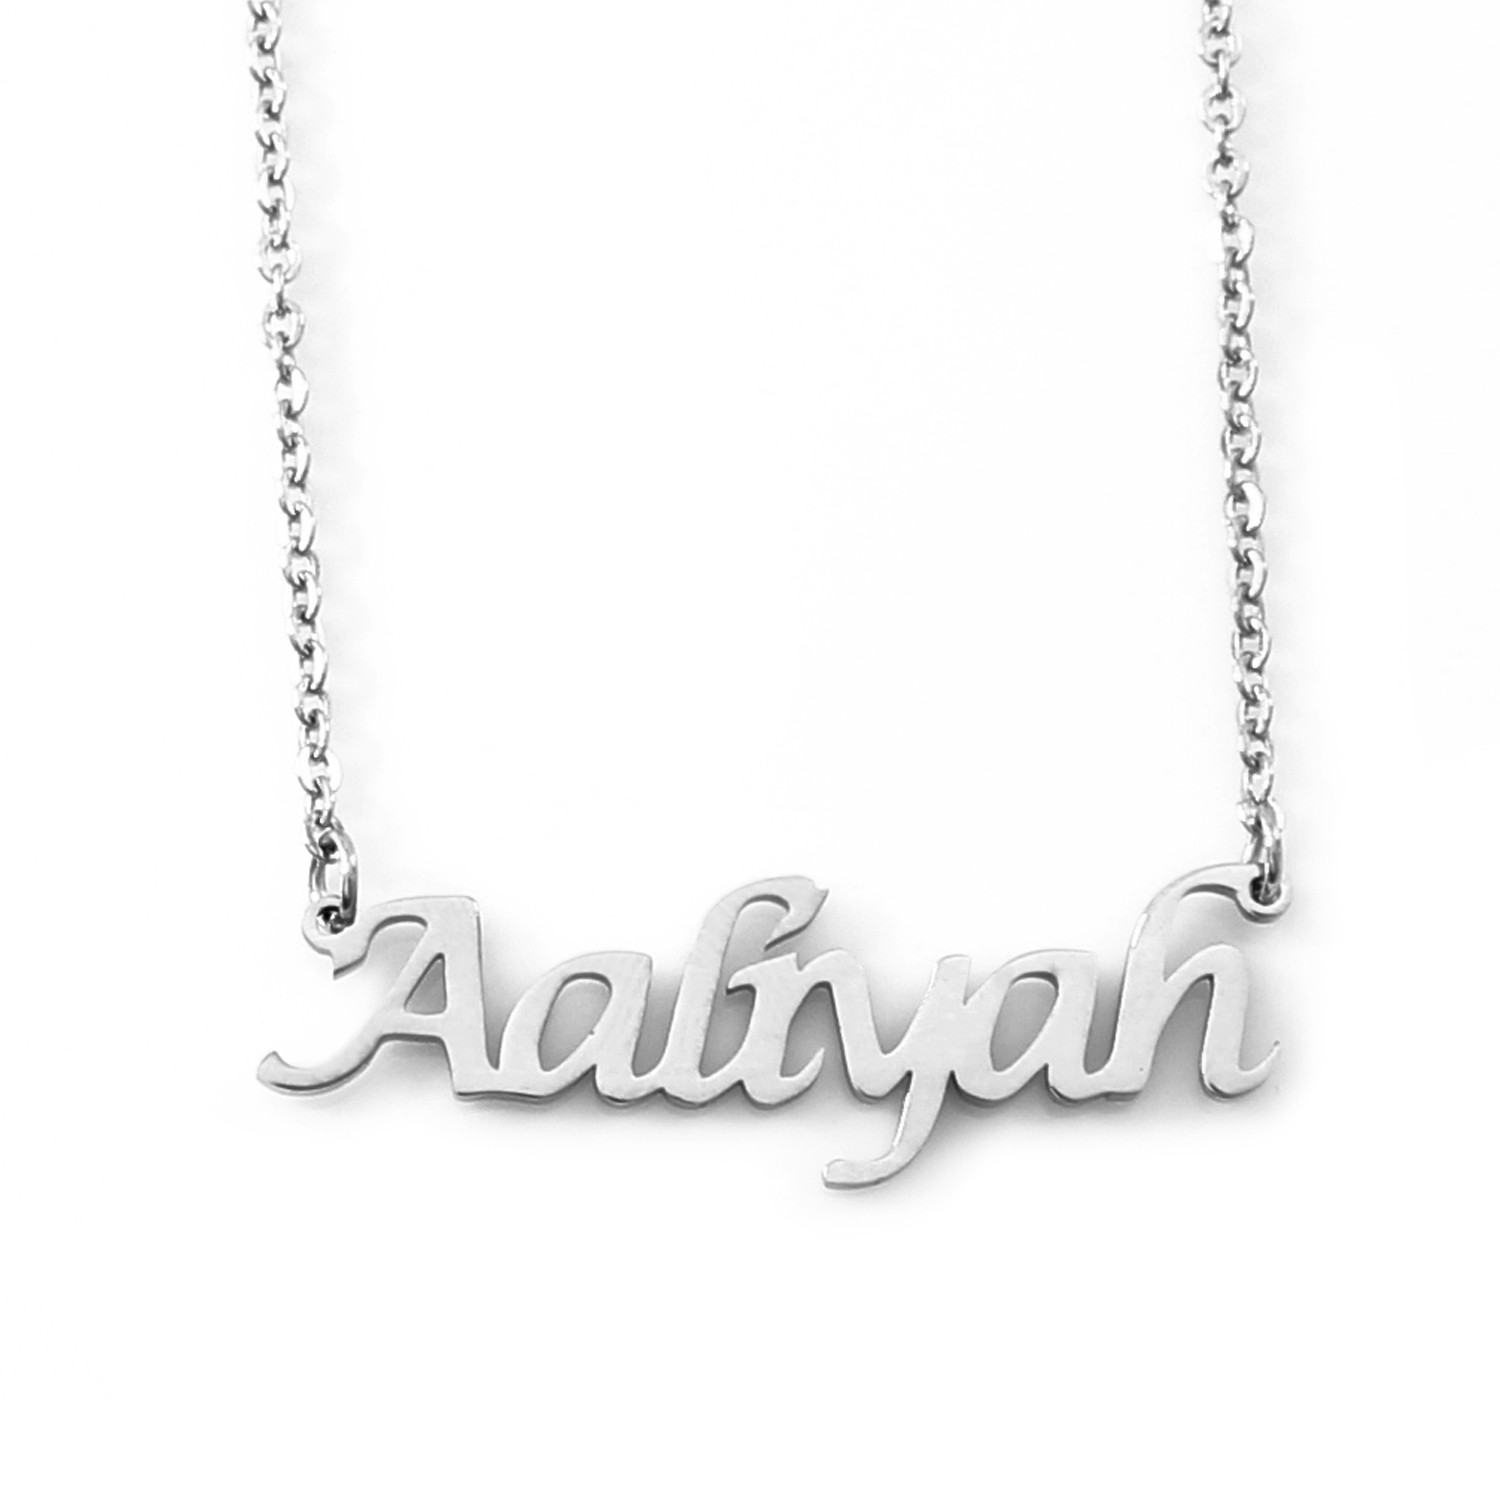 Name Chain ( English name on a chain )